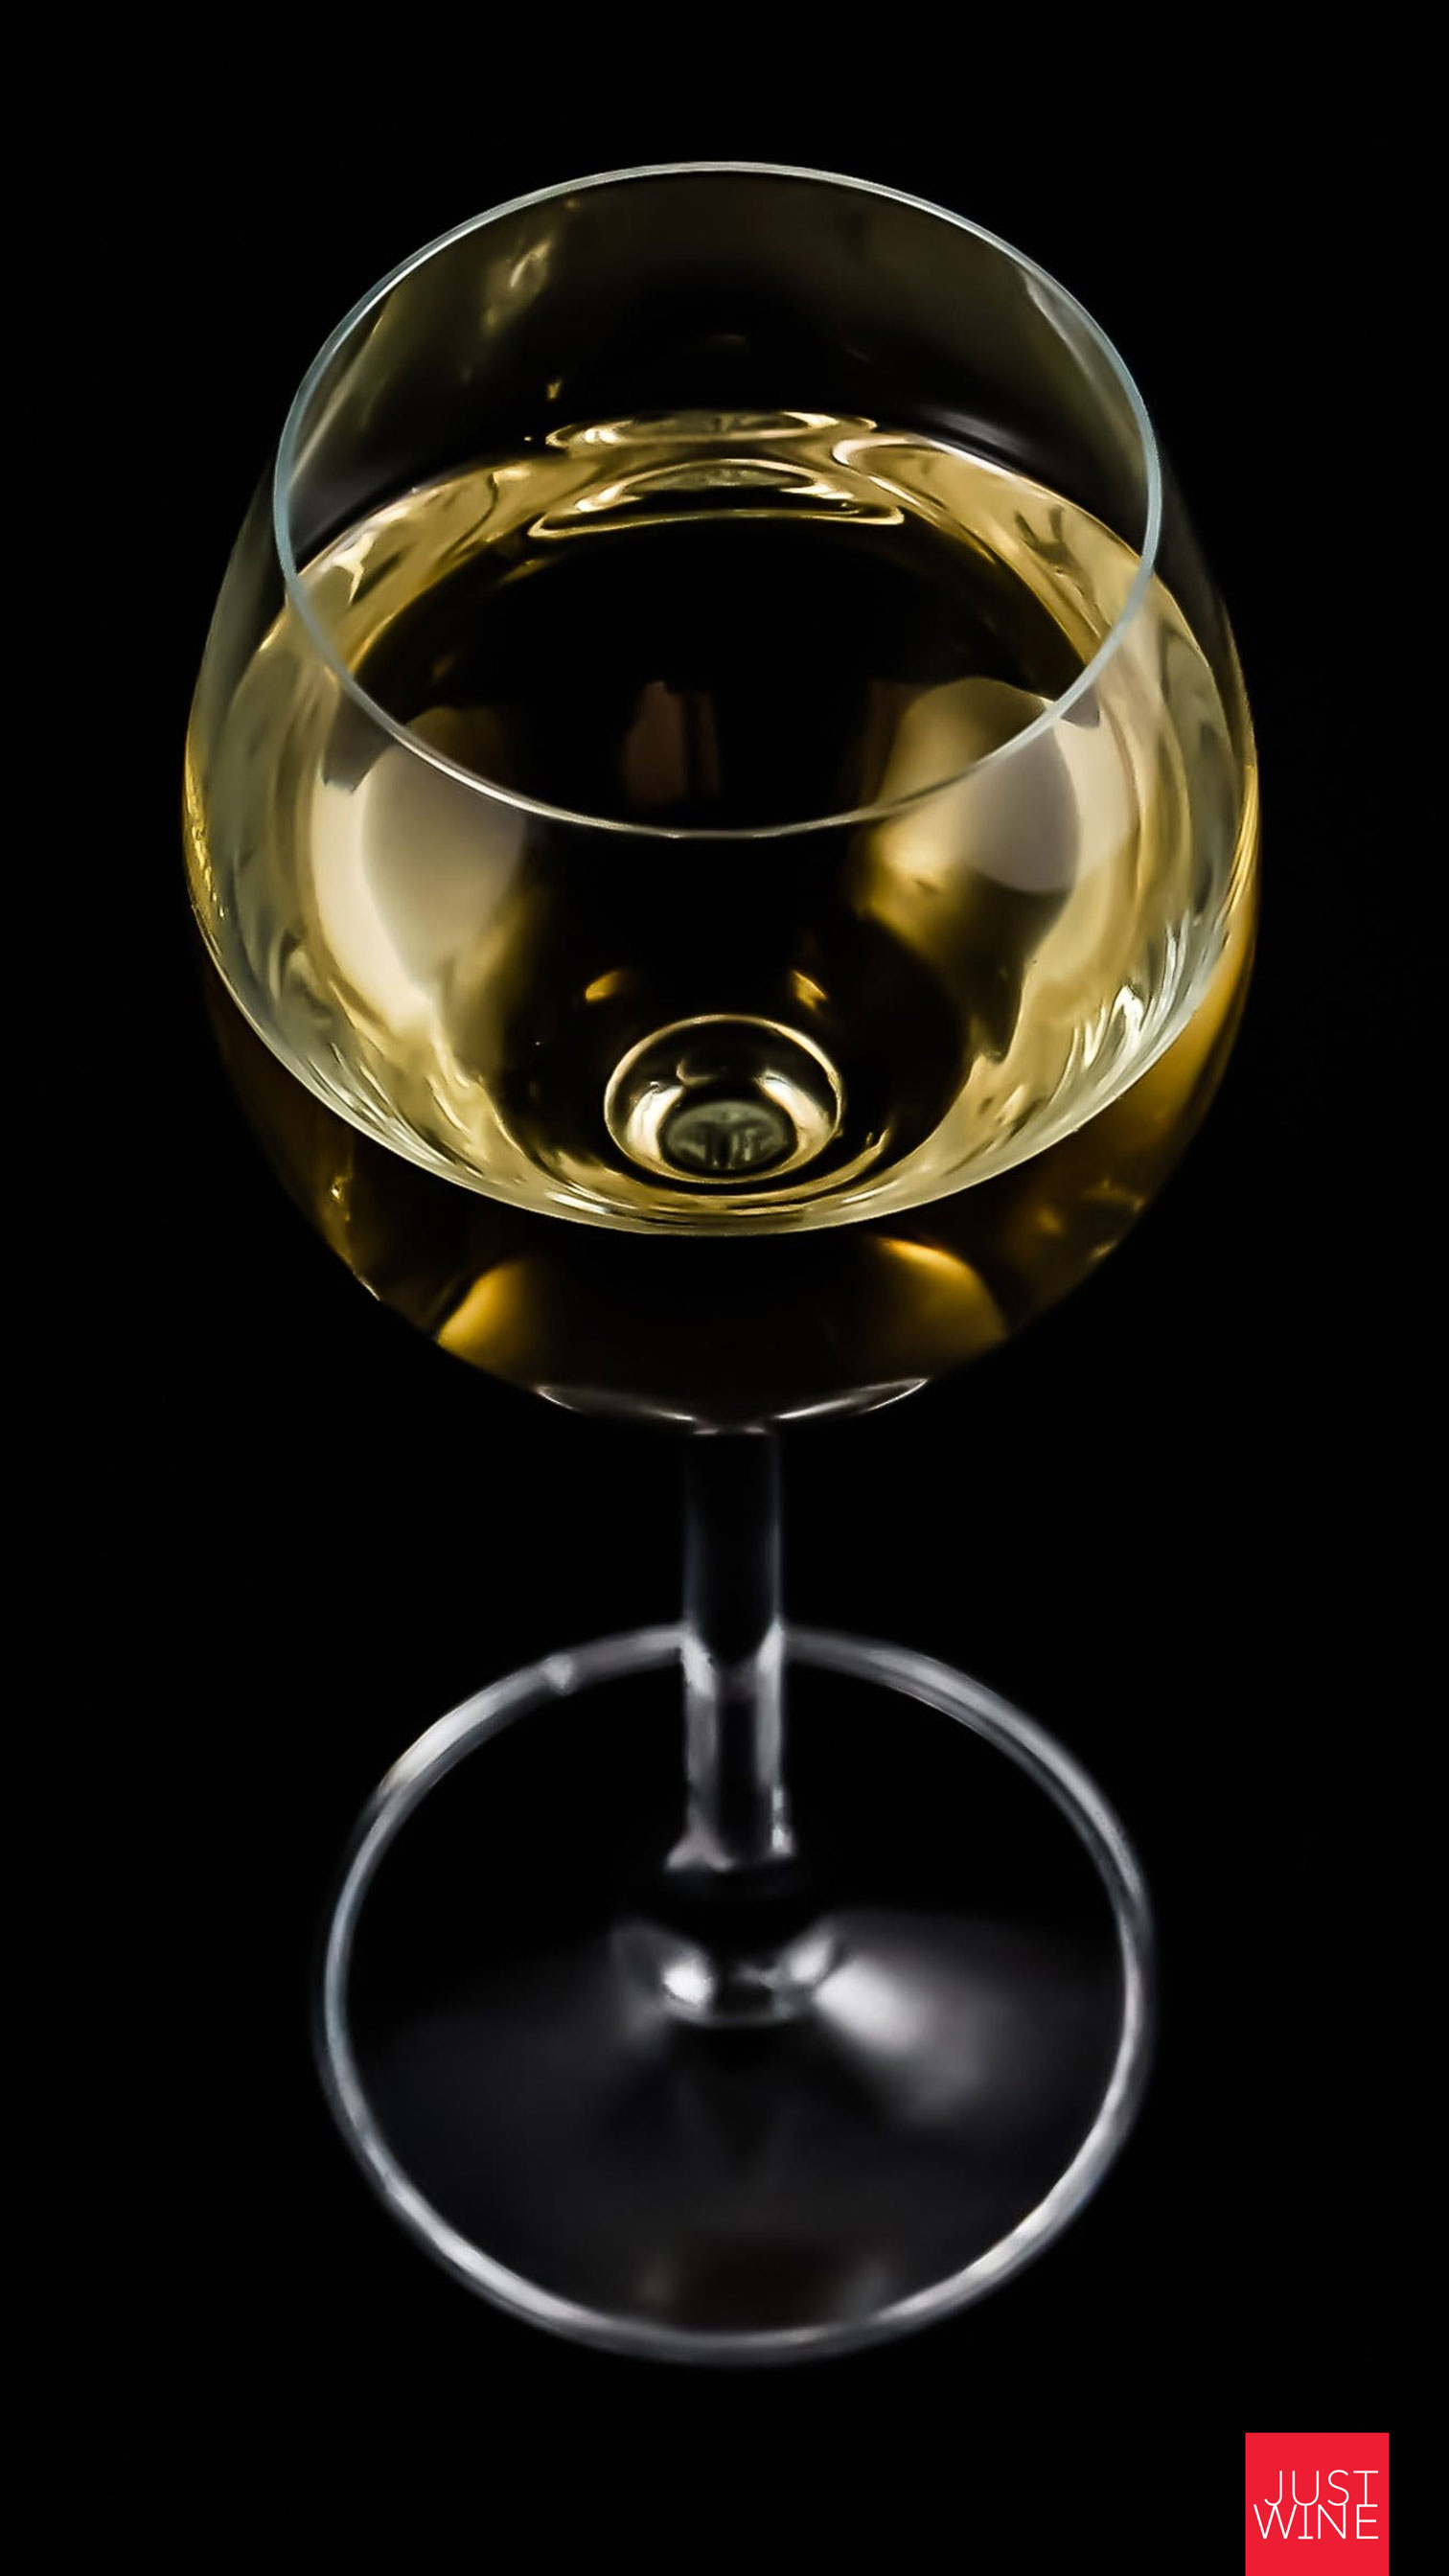 just-wine-mobile-wallpaper-white-background-glass